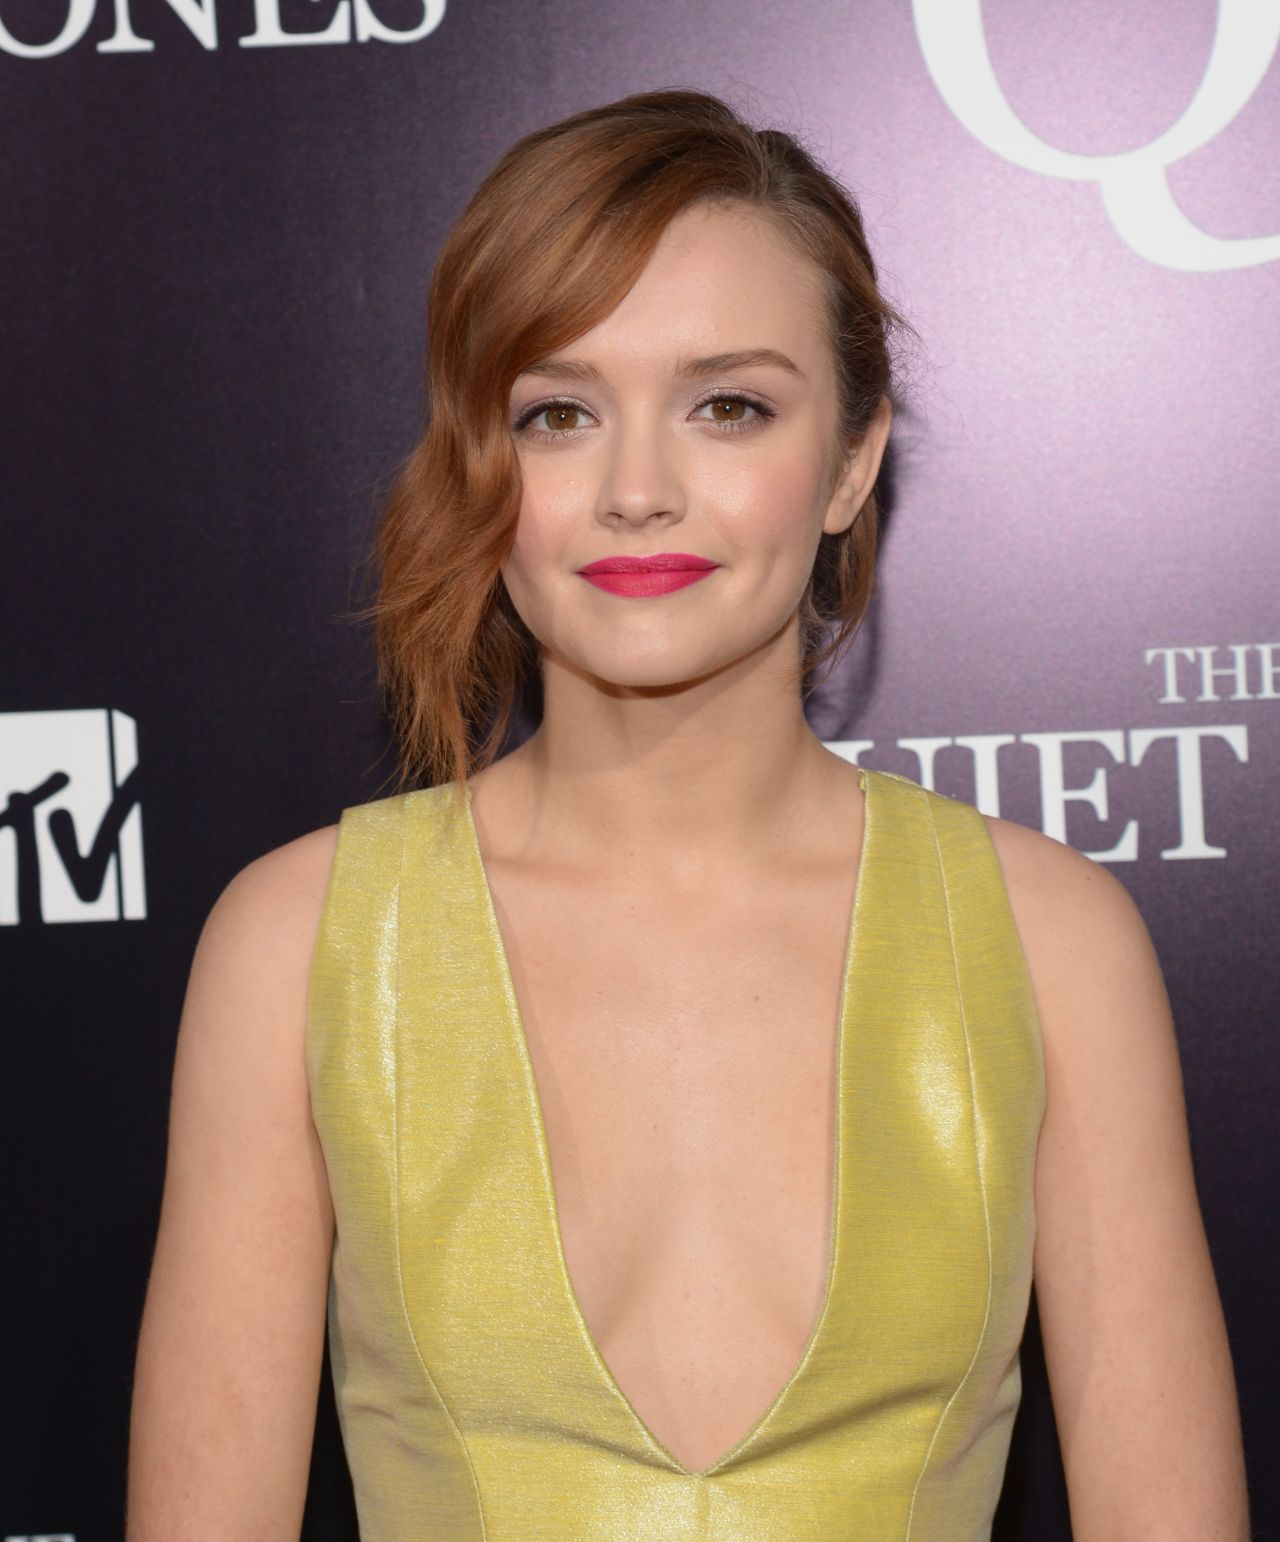 Olivia Cooke earned a  million dollar salary, leaving the net worth at 3 million in 2017